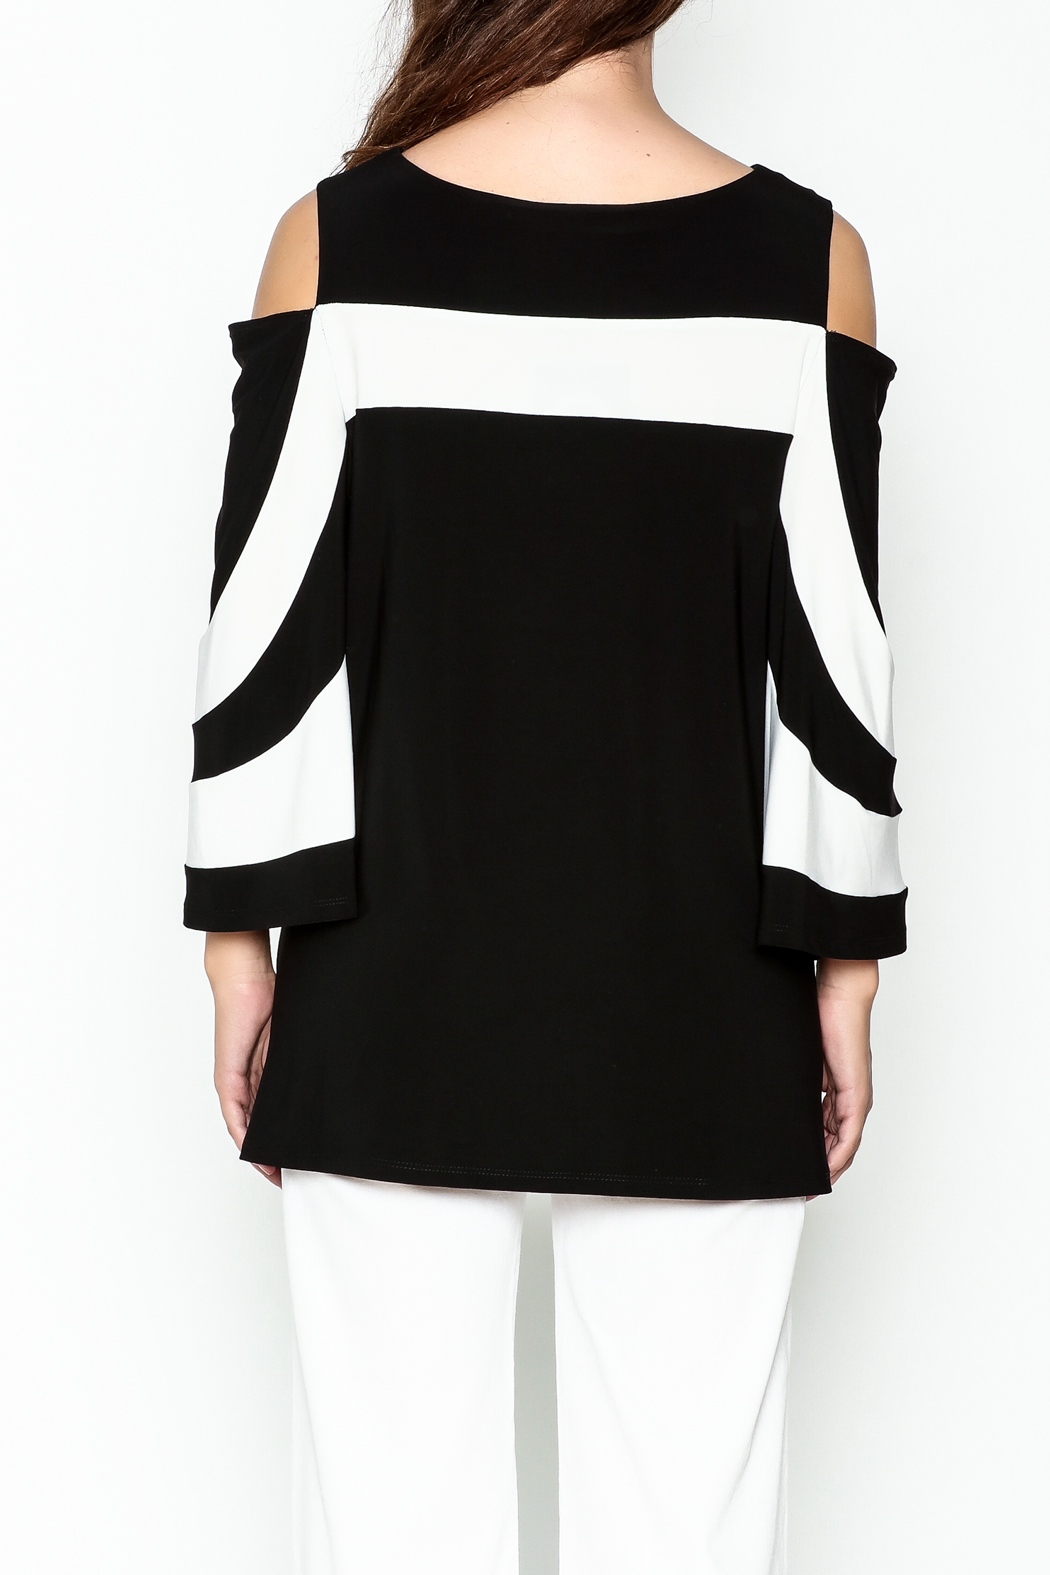 Frank Lyman Butterfly Sleeve Tunic - Back Cropped Image